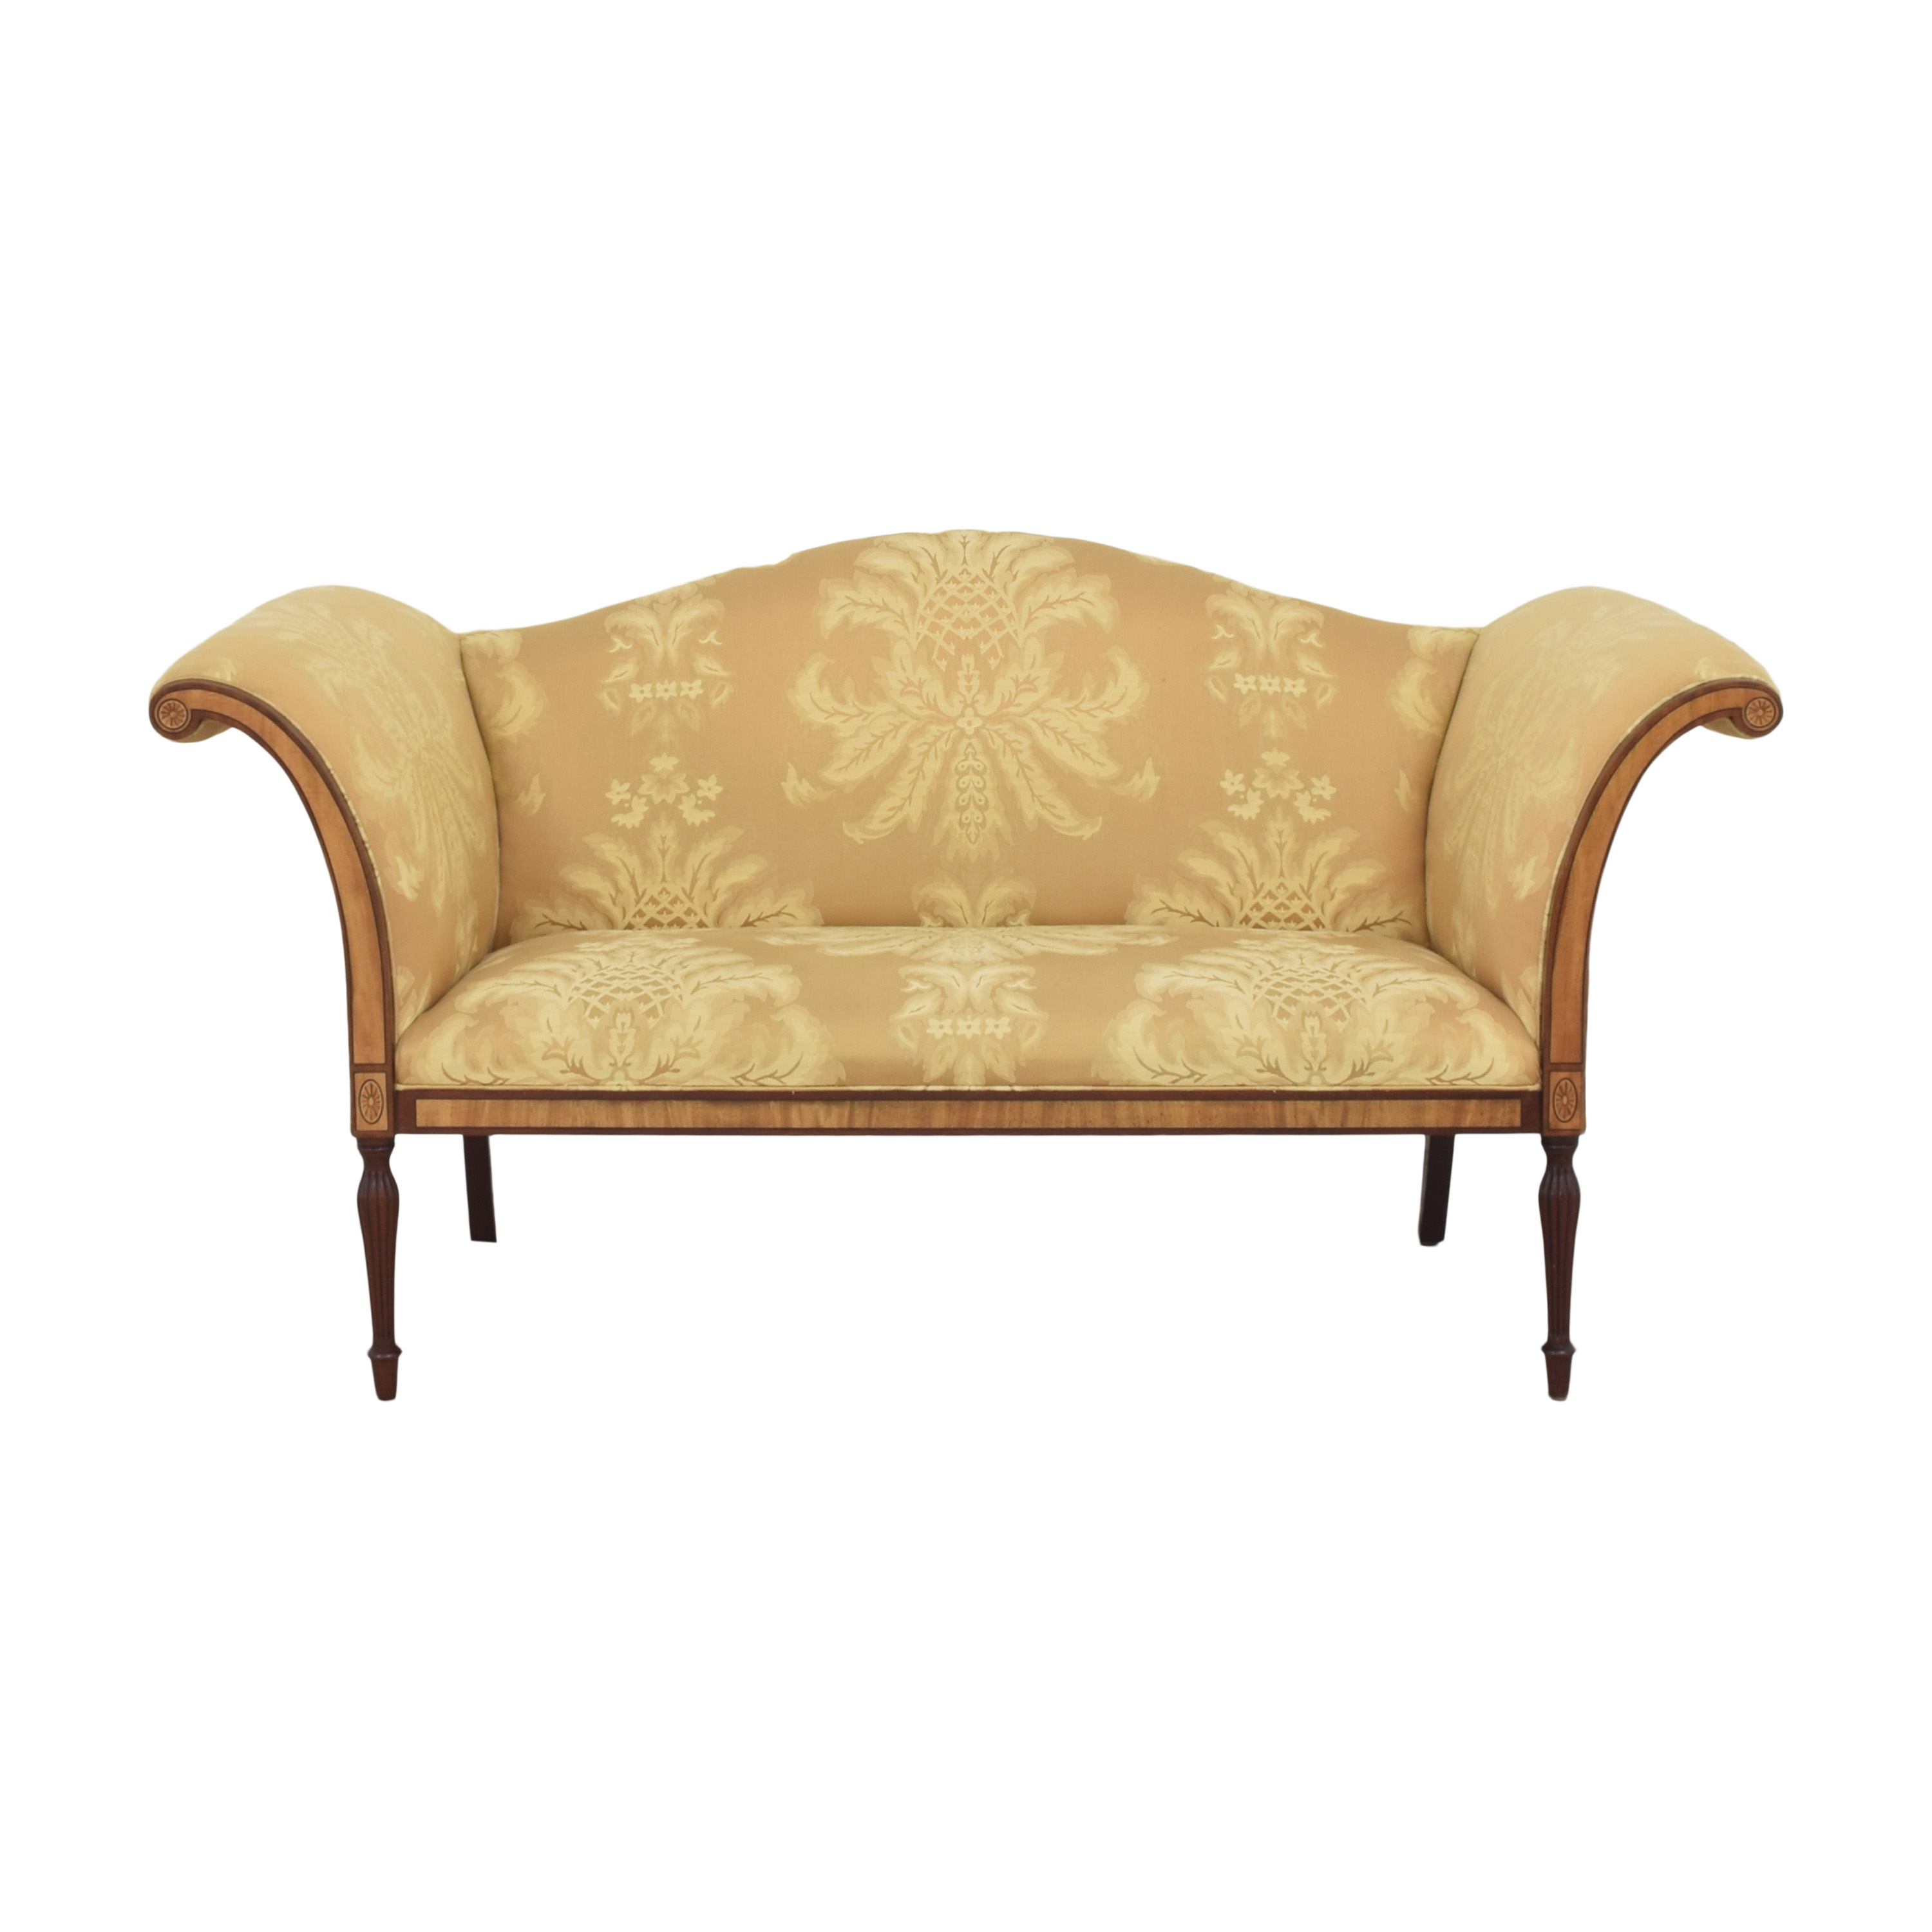 Southwood Southwood Loveseat with Pillows yellow